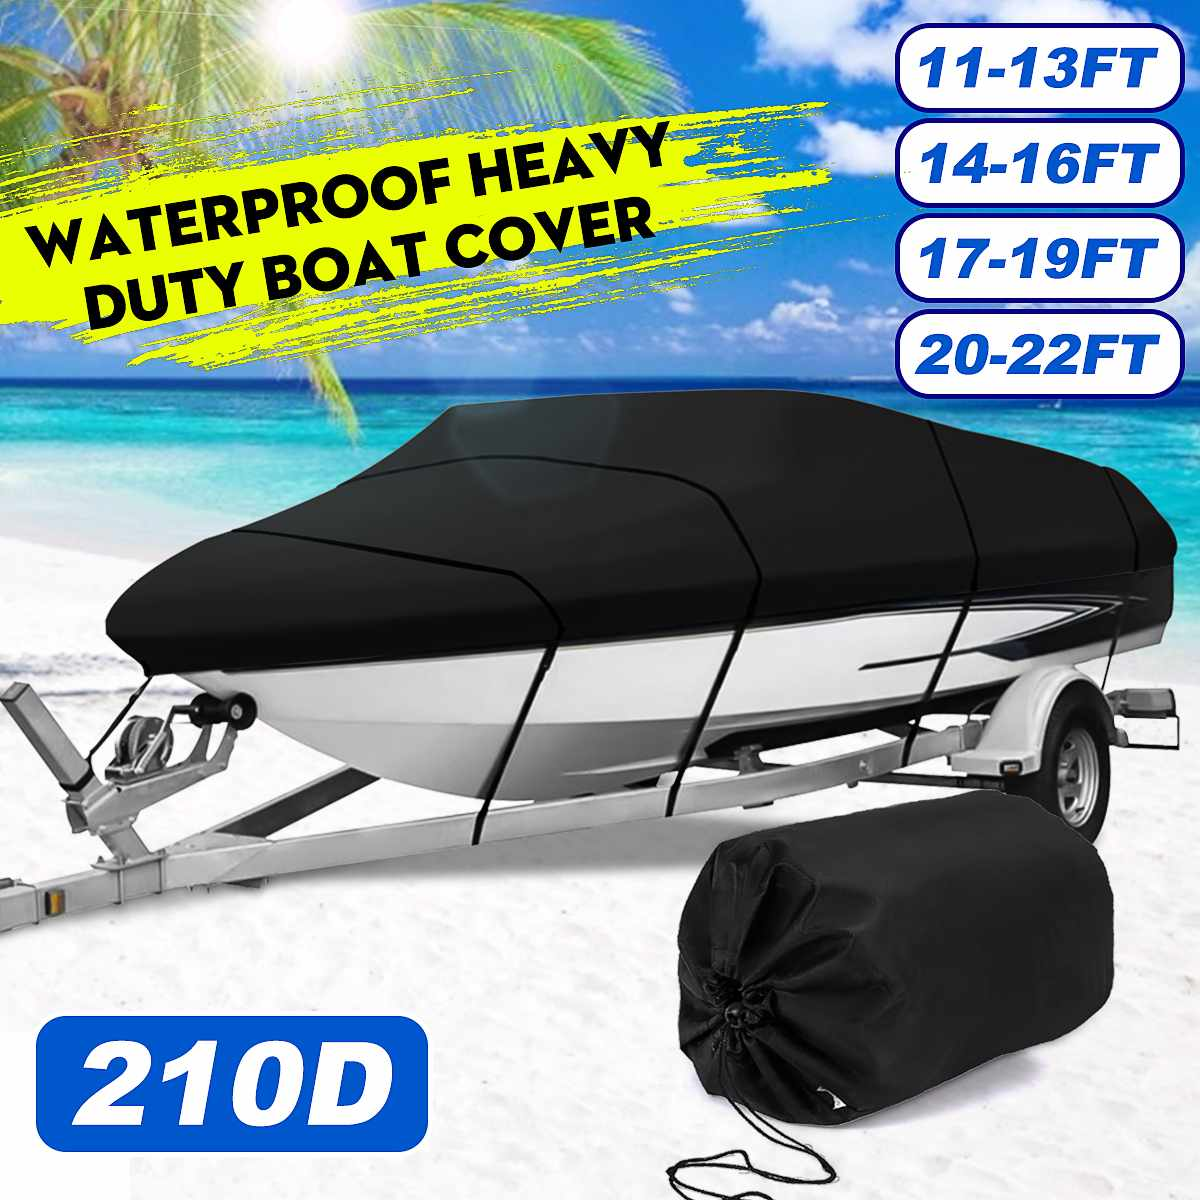 Boat-Cover Trailerable Uv-Protected Canvas 210D Black 11-13ft 14-16ft 17-19ft 20-22ft title=